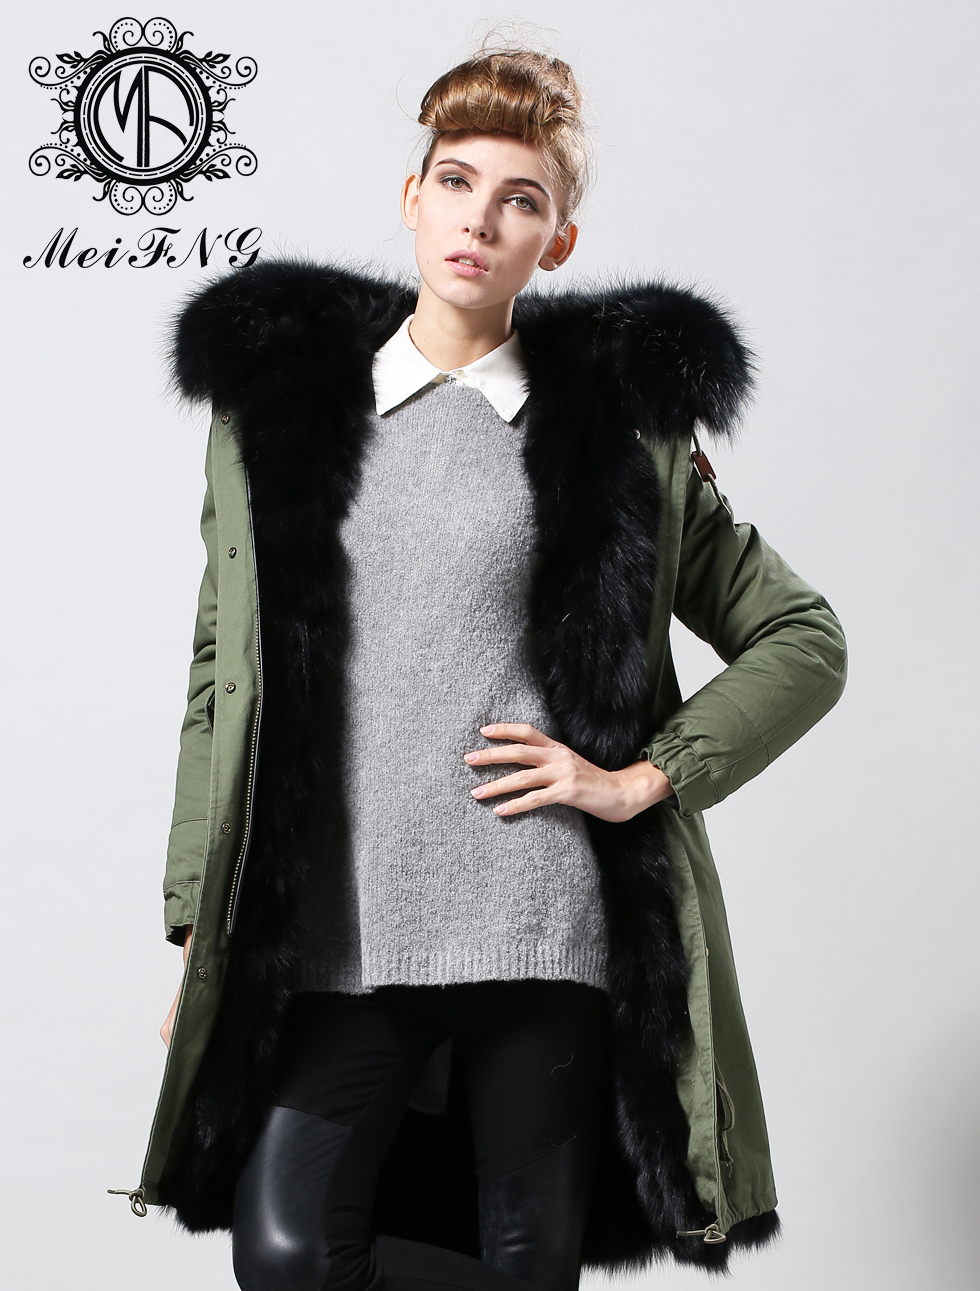 Winter fashion parka with real fox fur coat in black fur color, green/navy/black/yellow parka for men or woman